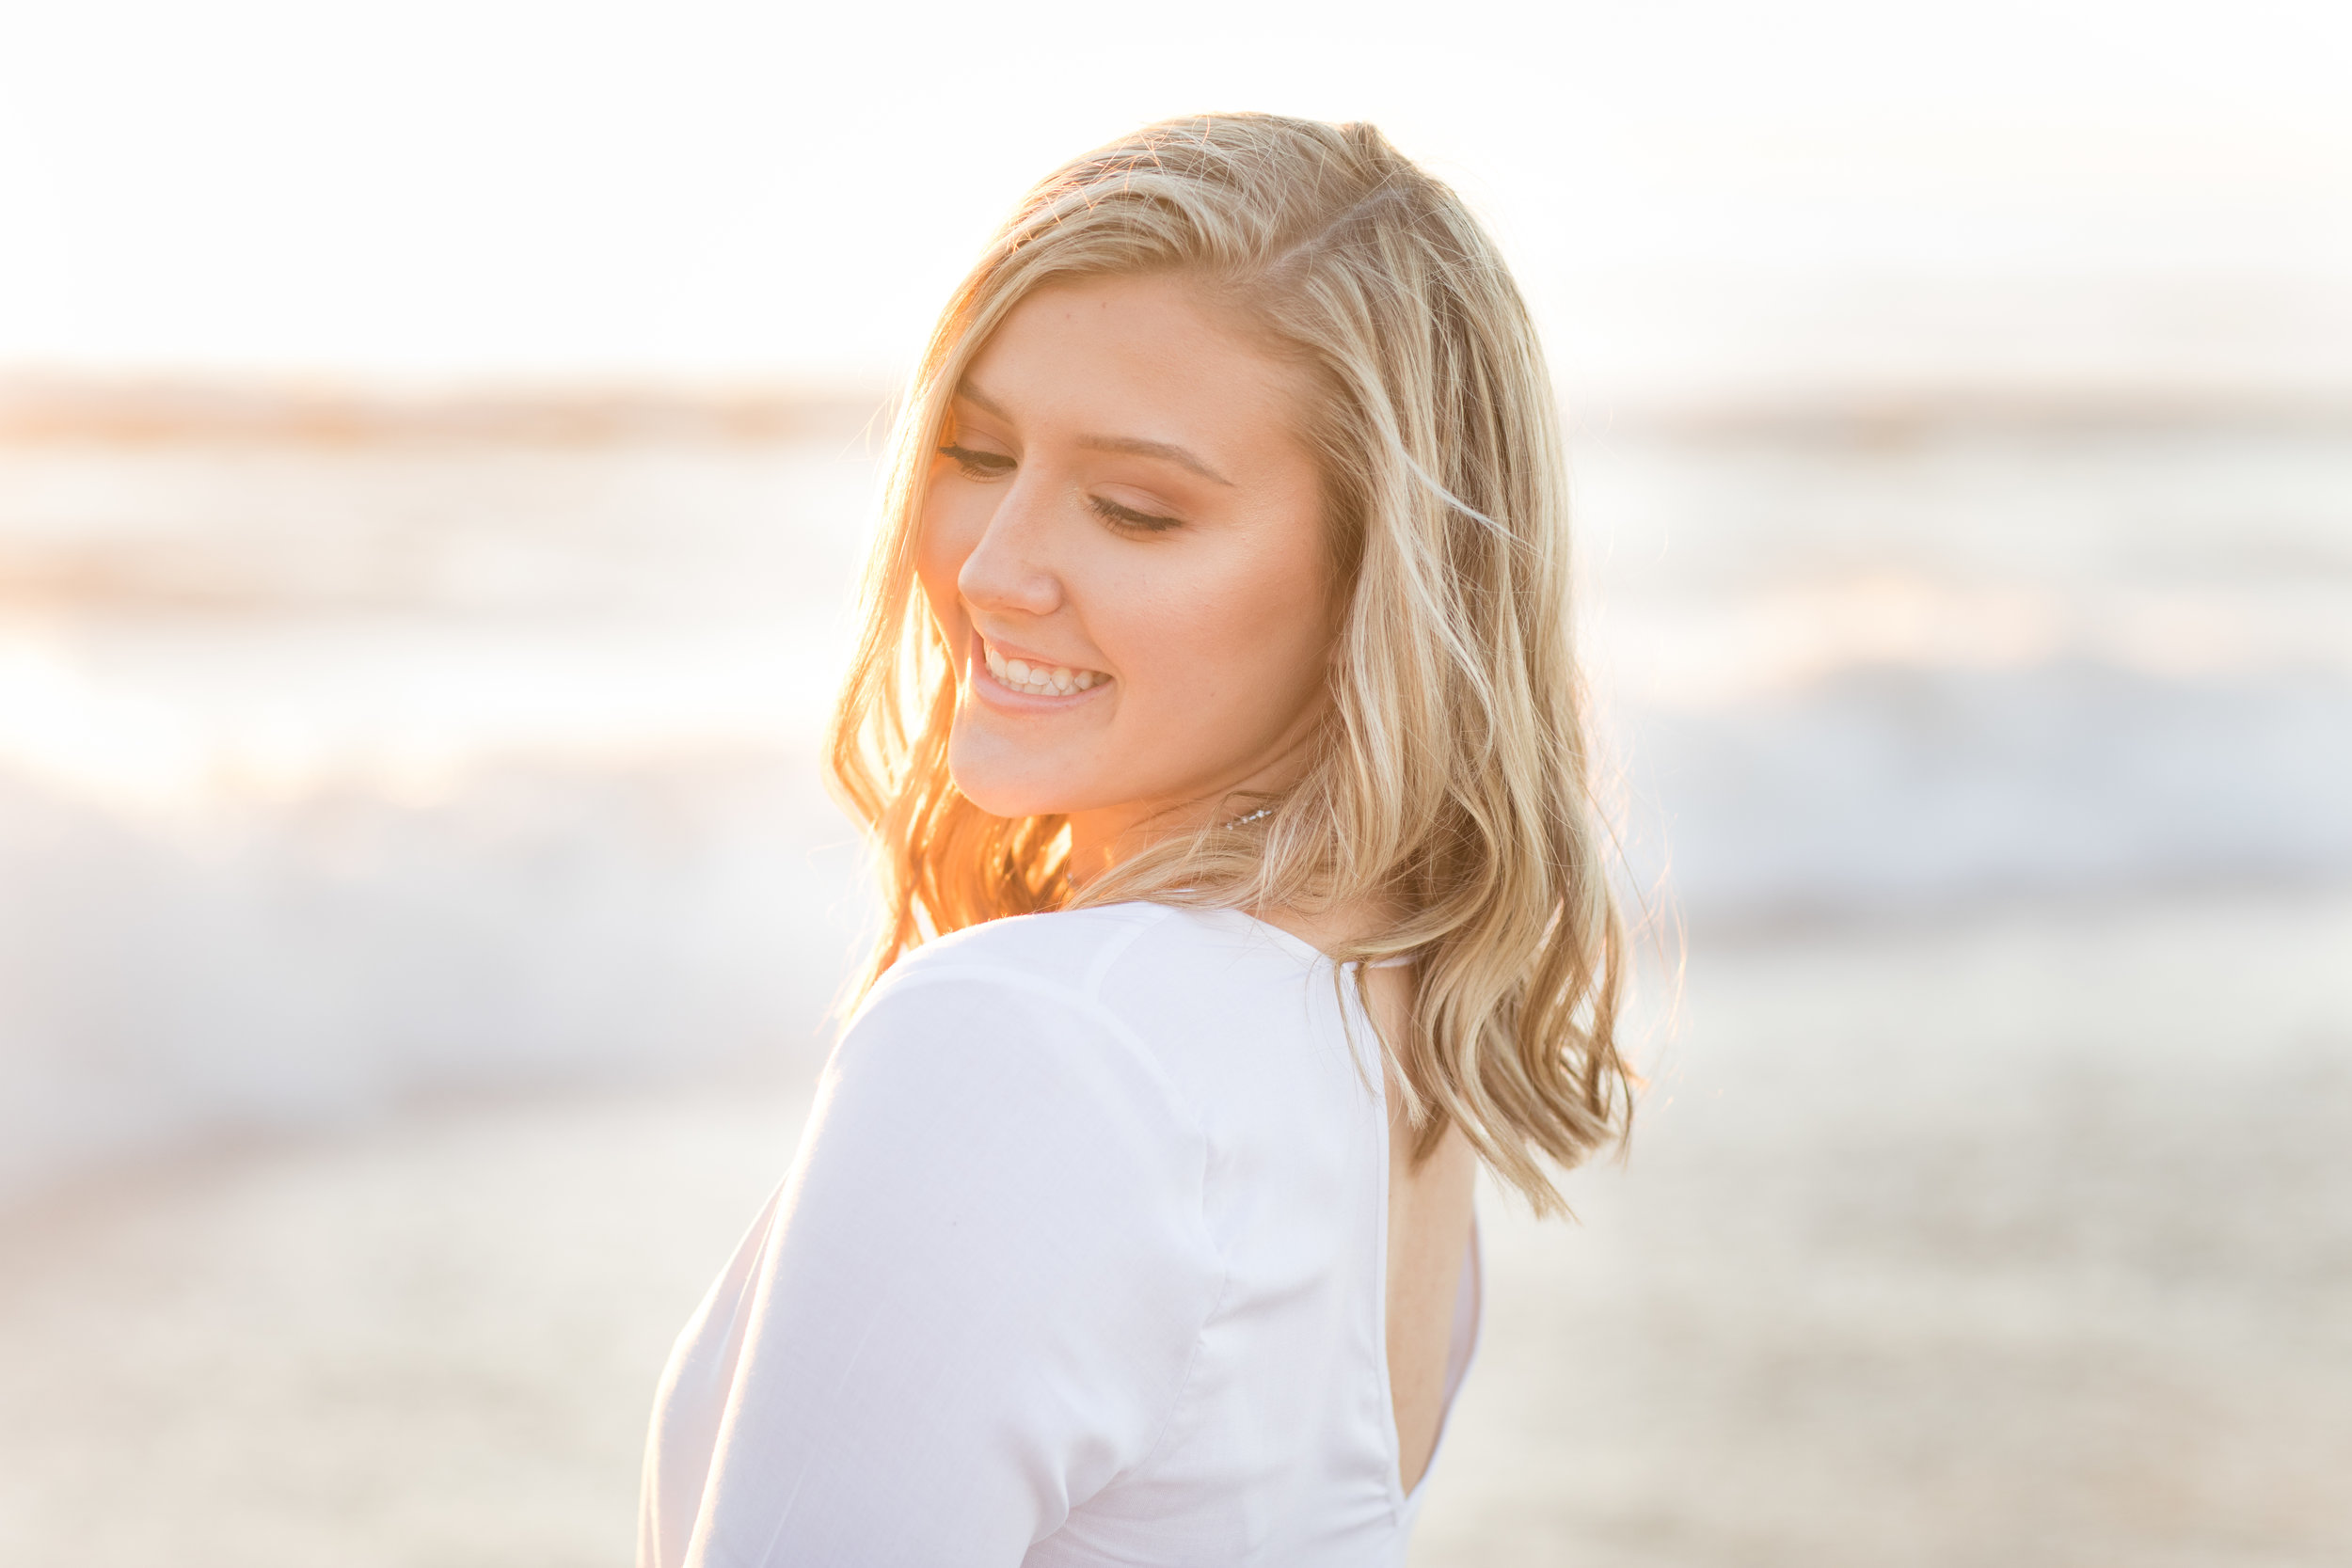 manhattan beach senior portraits